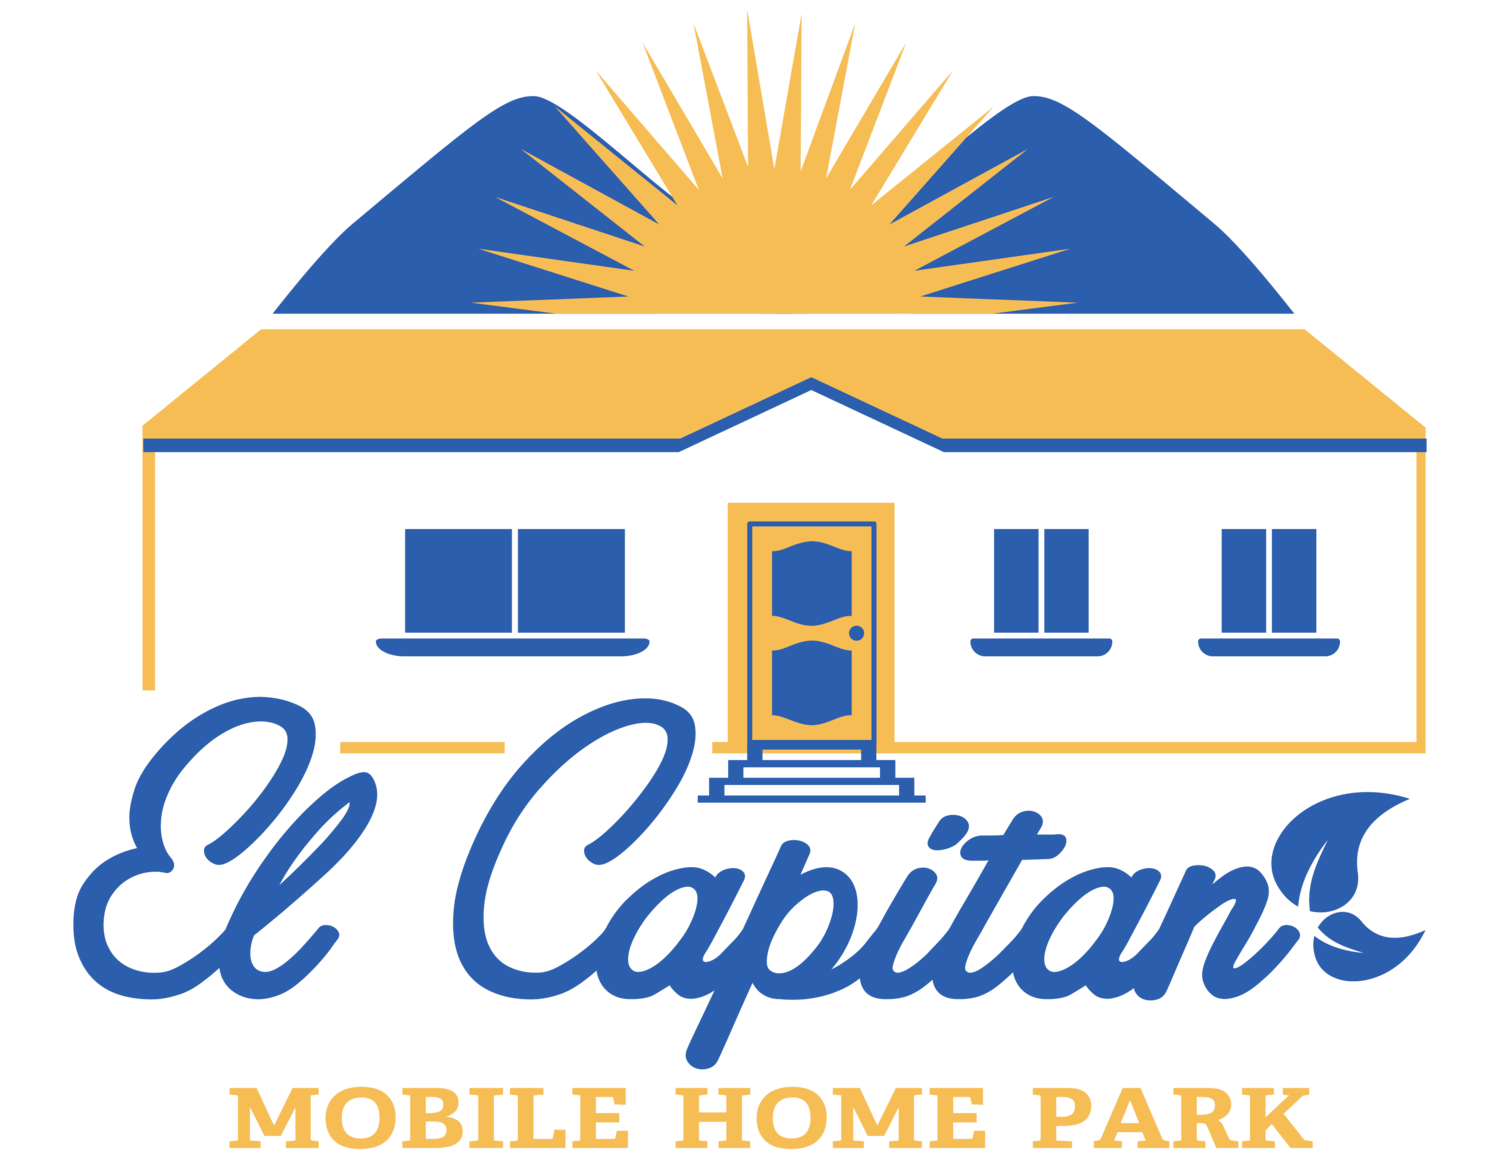 El Capitan Mobile Home Park